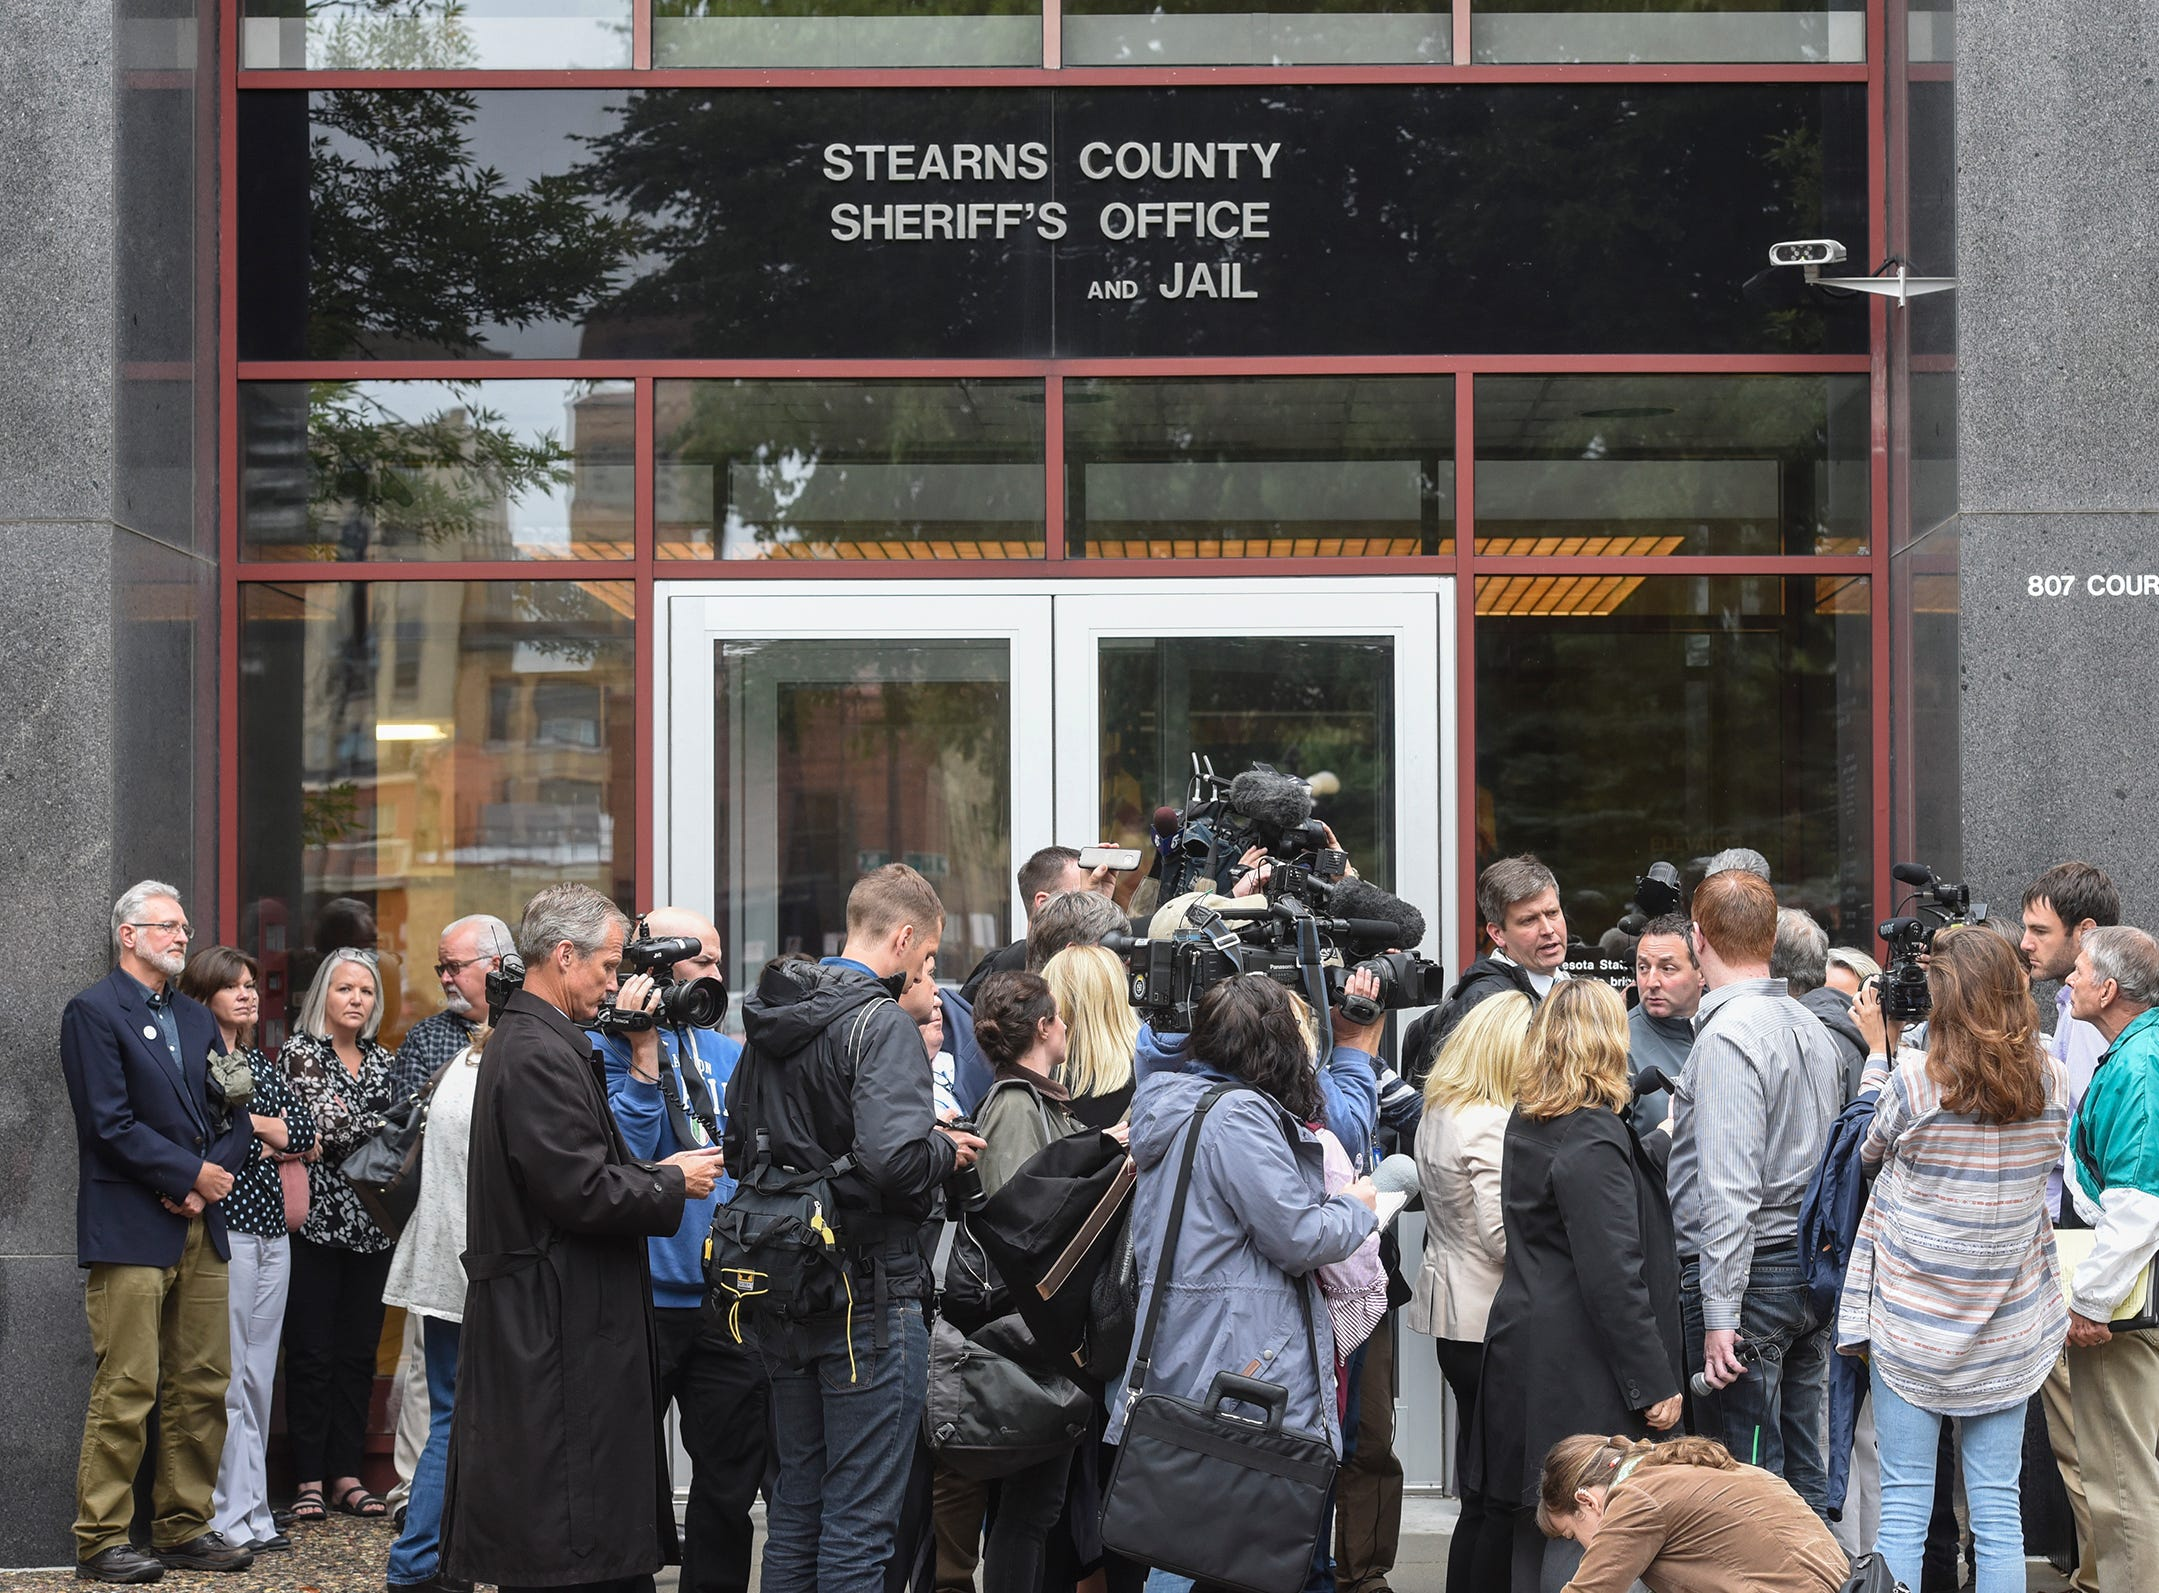 Reporters gather outside the Stearns County Sheriff's Office following a press conference for the release of investigative files in the Jacob Wetterling case Thursday, Sept. 20, 2018, in St. Cloud.